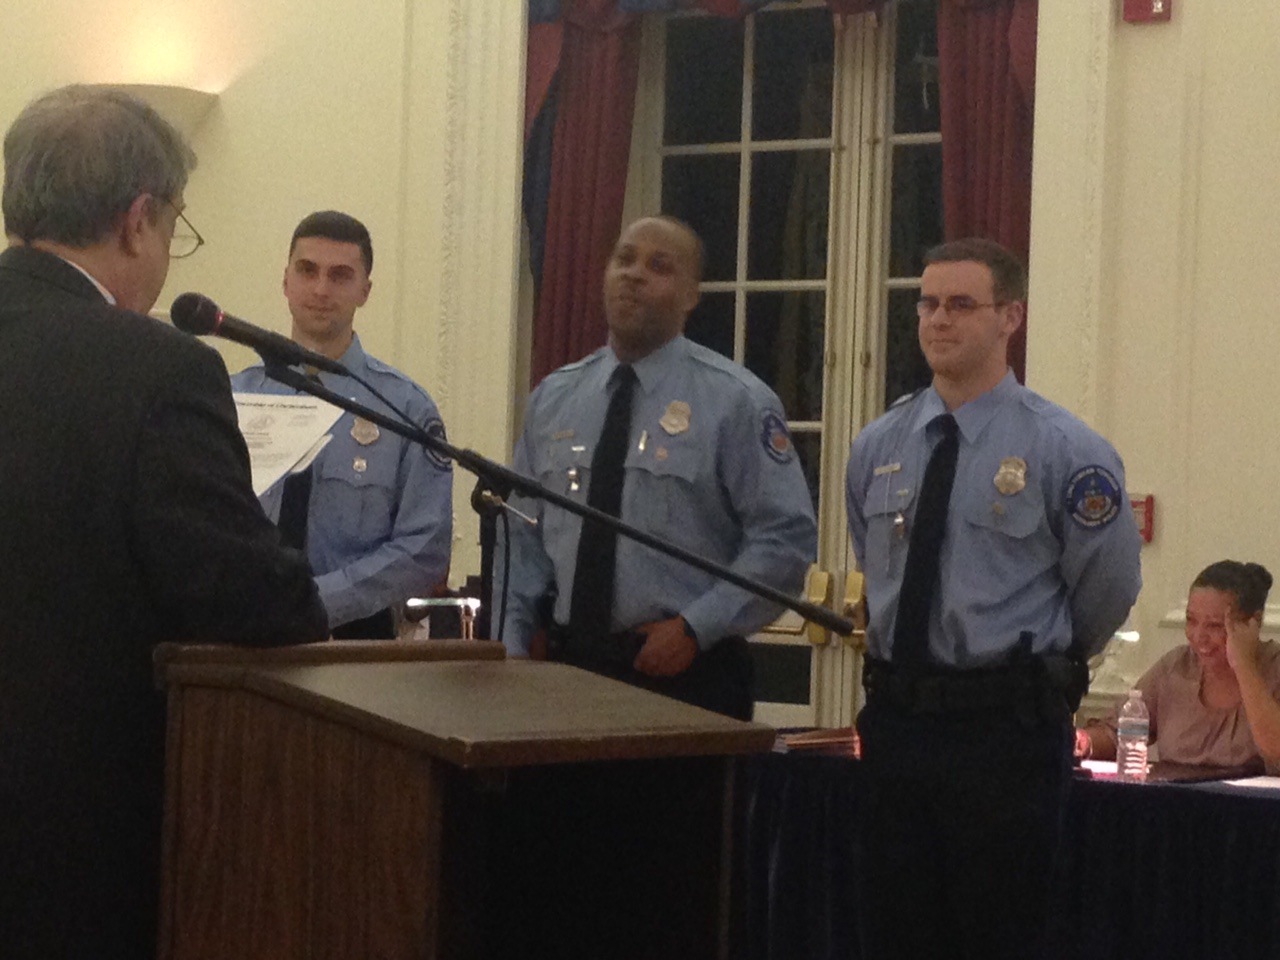 Joseph Long '16 (right) sworn in as an auxiliary officer for the Cheltenham PD.